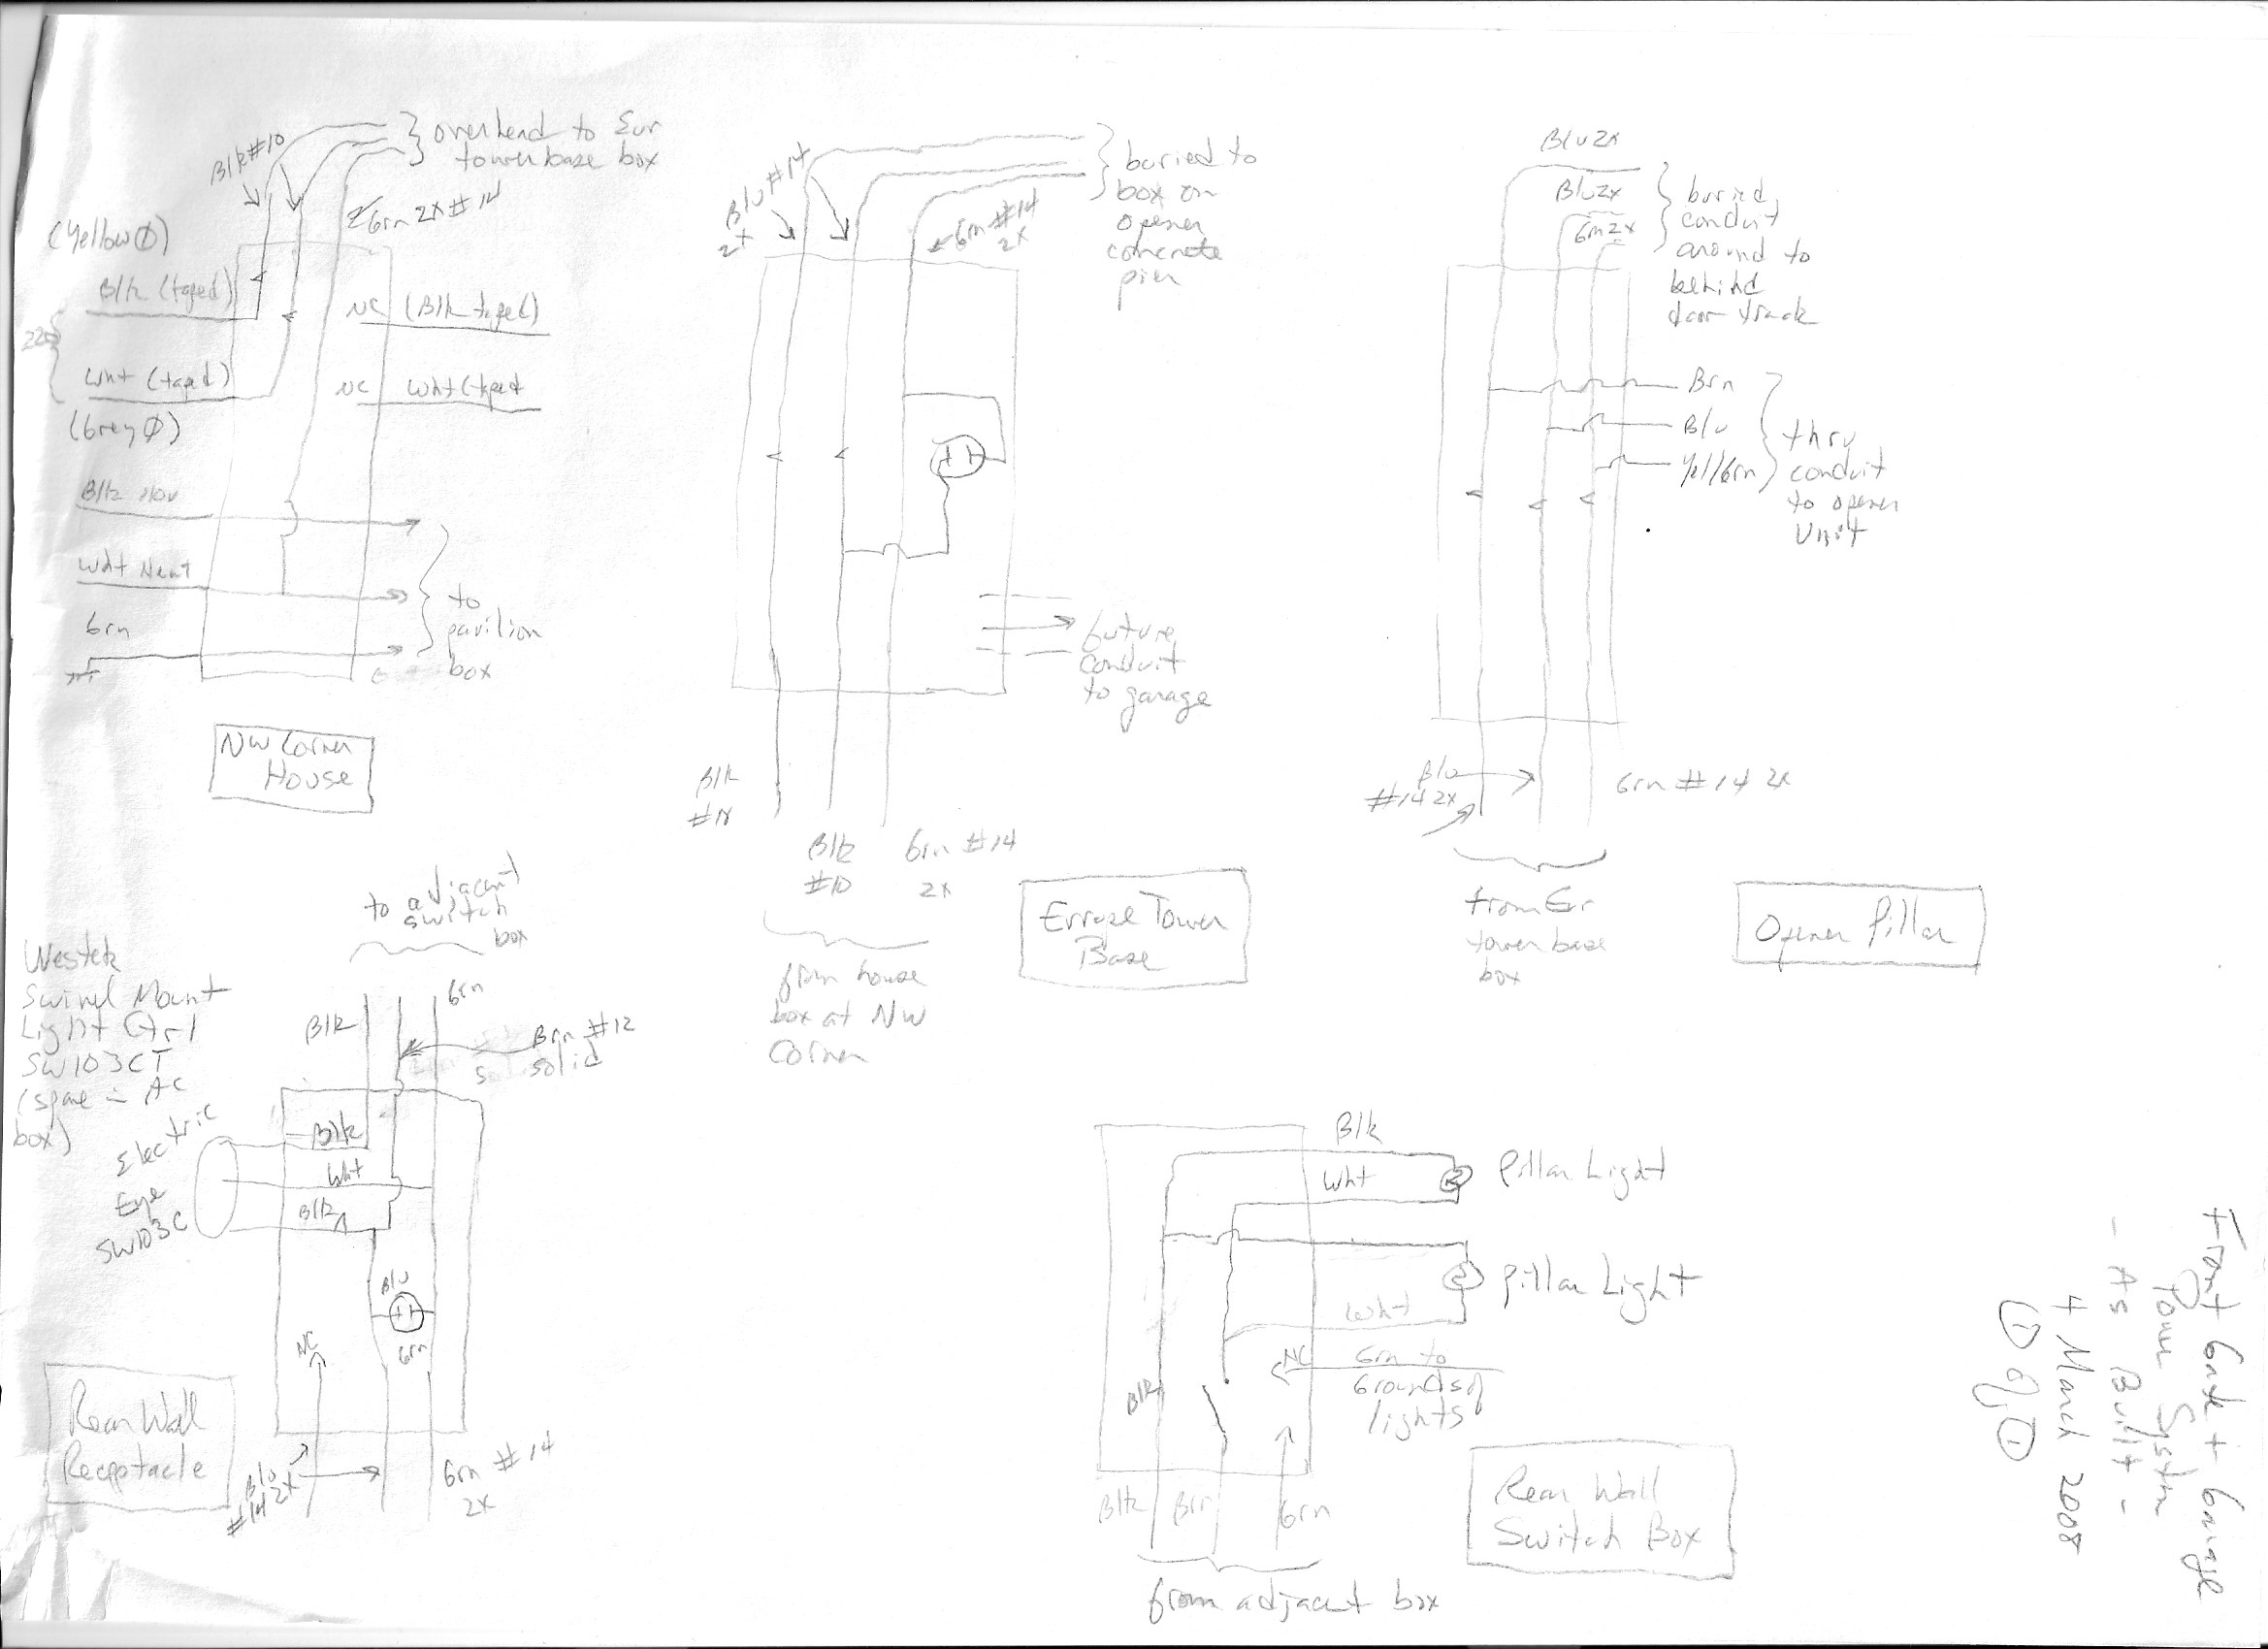 signal.point.front.gate.wiring.diagram.mar.2008 signal point our curacao qth Frontgate Flip Christmas Tree at arjmand.co